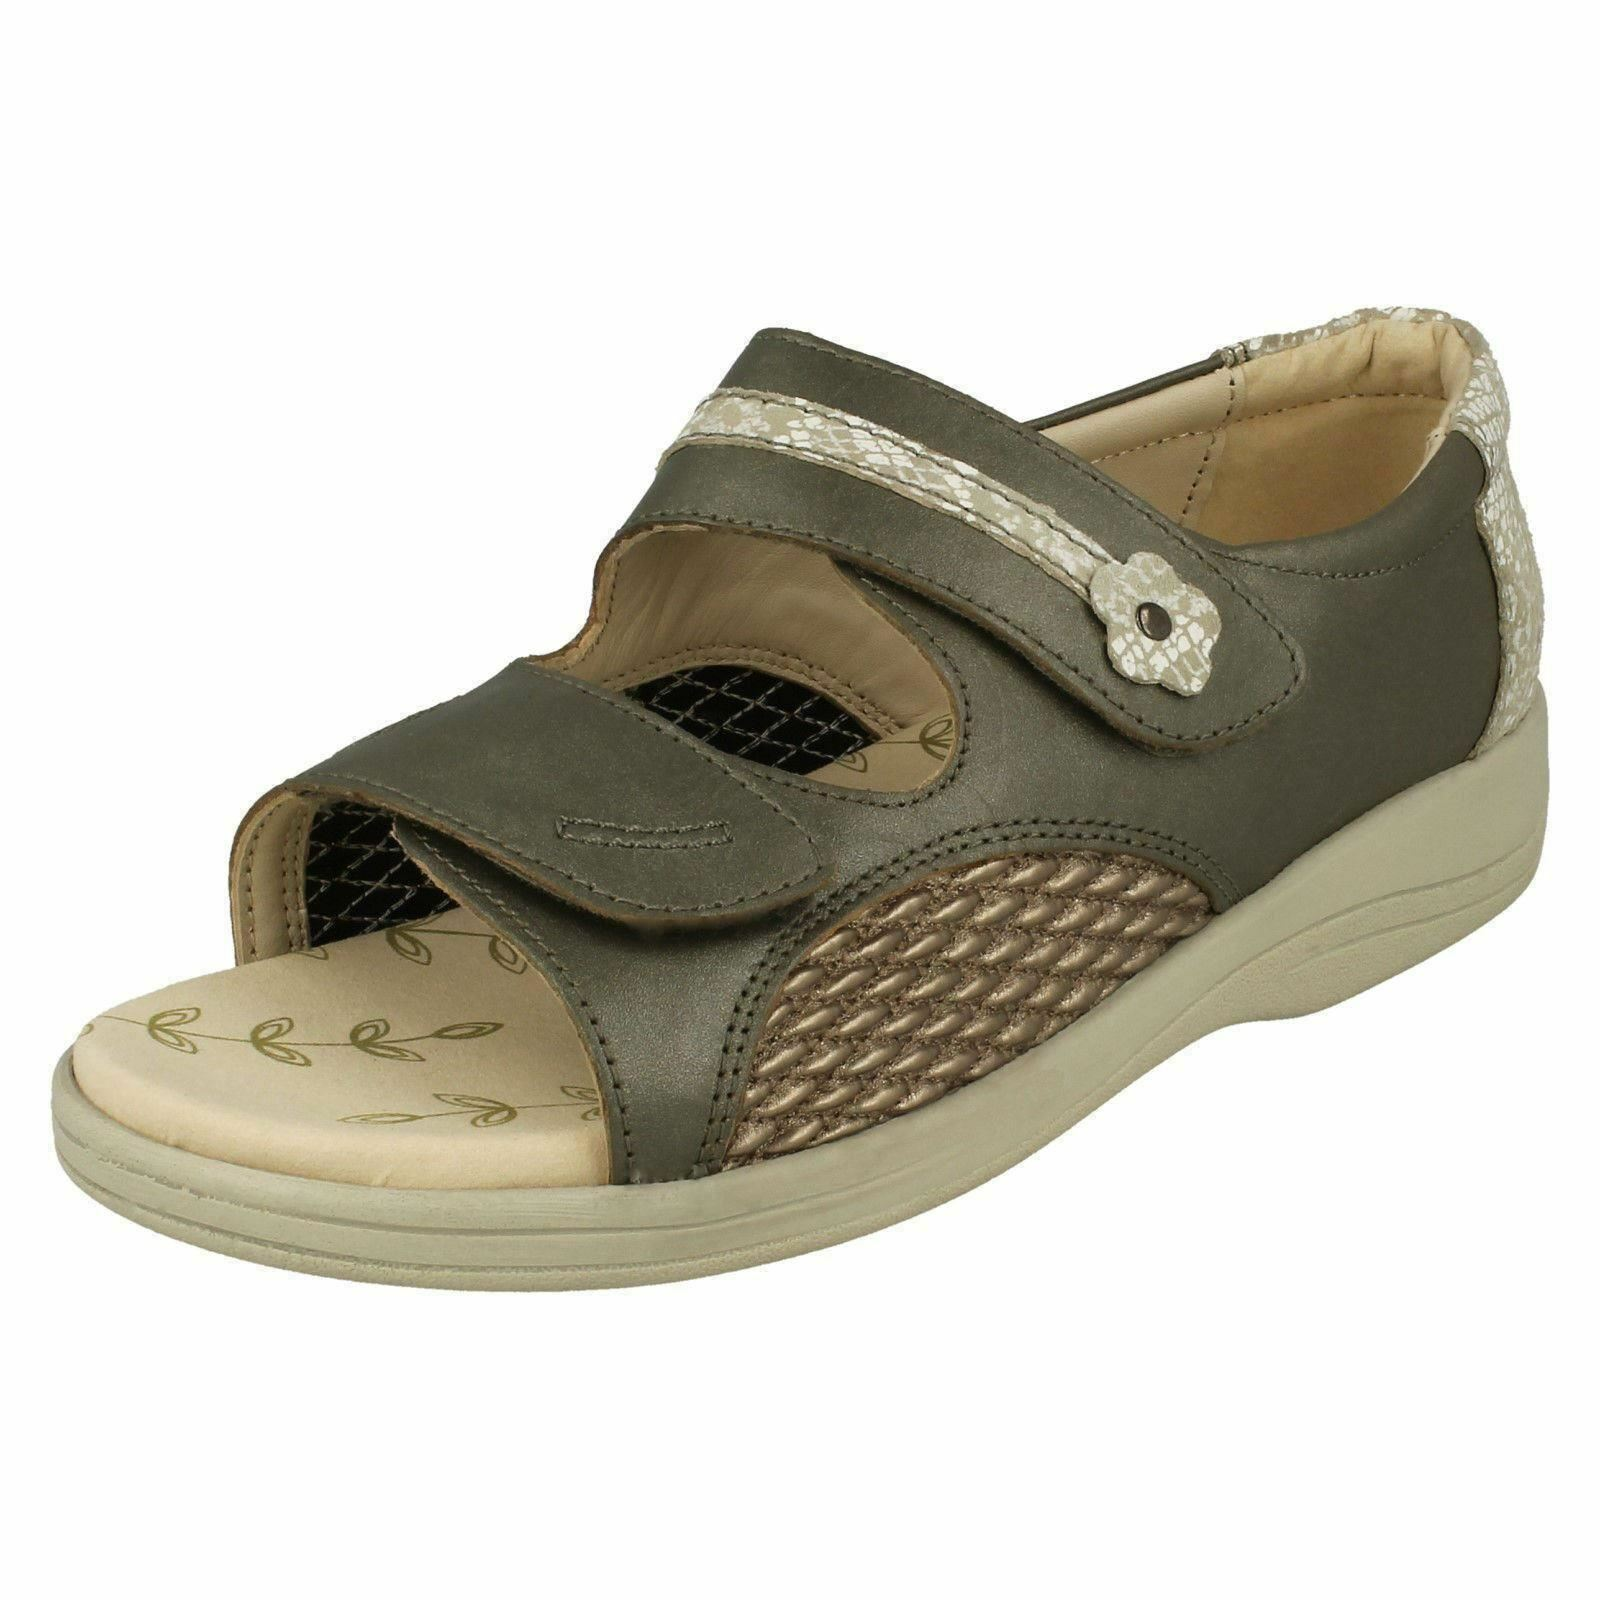 Padders Graceful Wide Fitting Leather Sandal